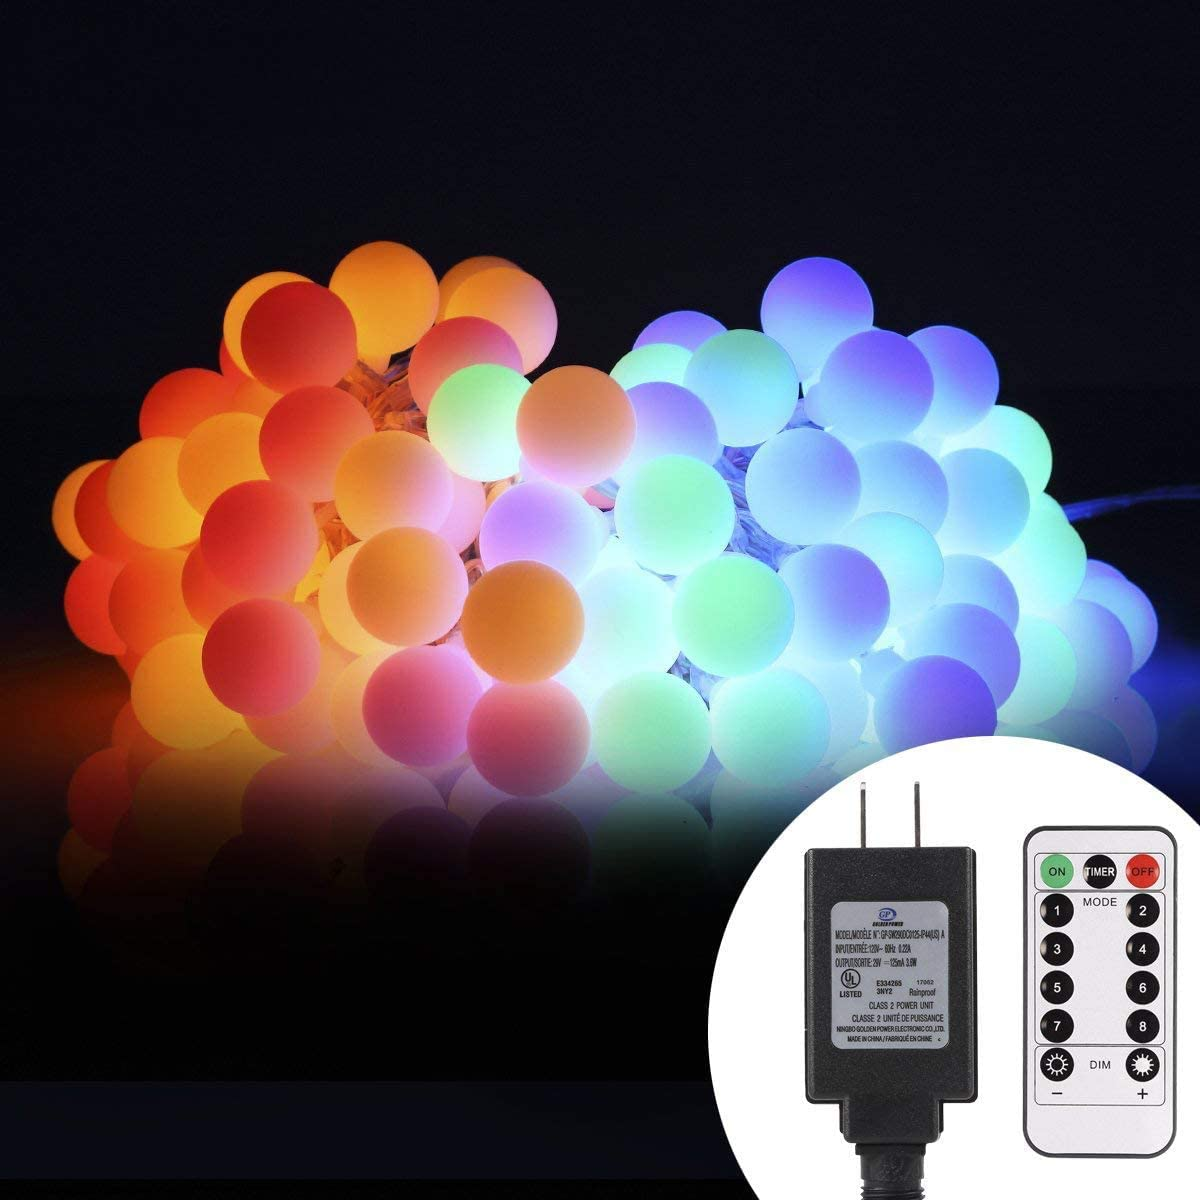 ALOVECO 44ft 100 LED Globe String Lights, 8 Dimmable Lighting Modes with Remote Timer, UL Listed 29V Low voltage Waterproof Decorative Lights for Bedroom, Patio, Garden, Party Multi Color